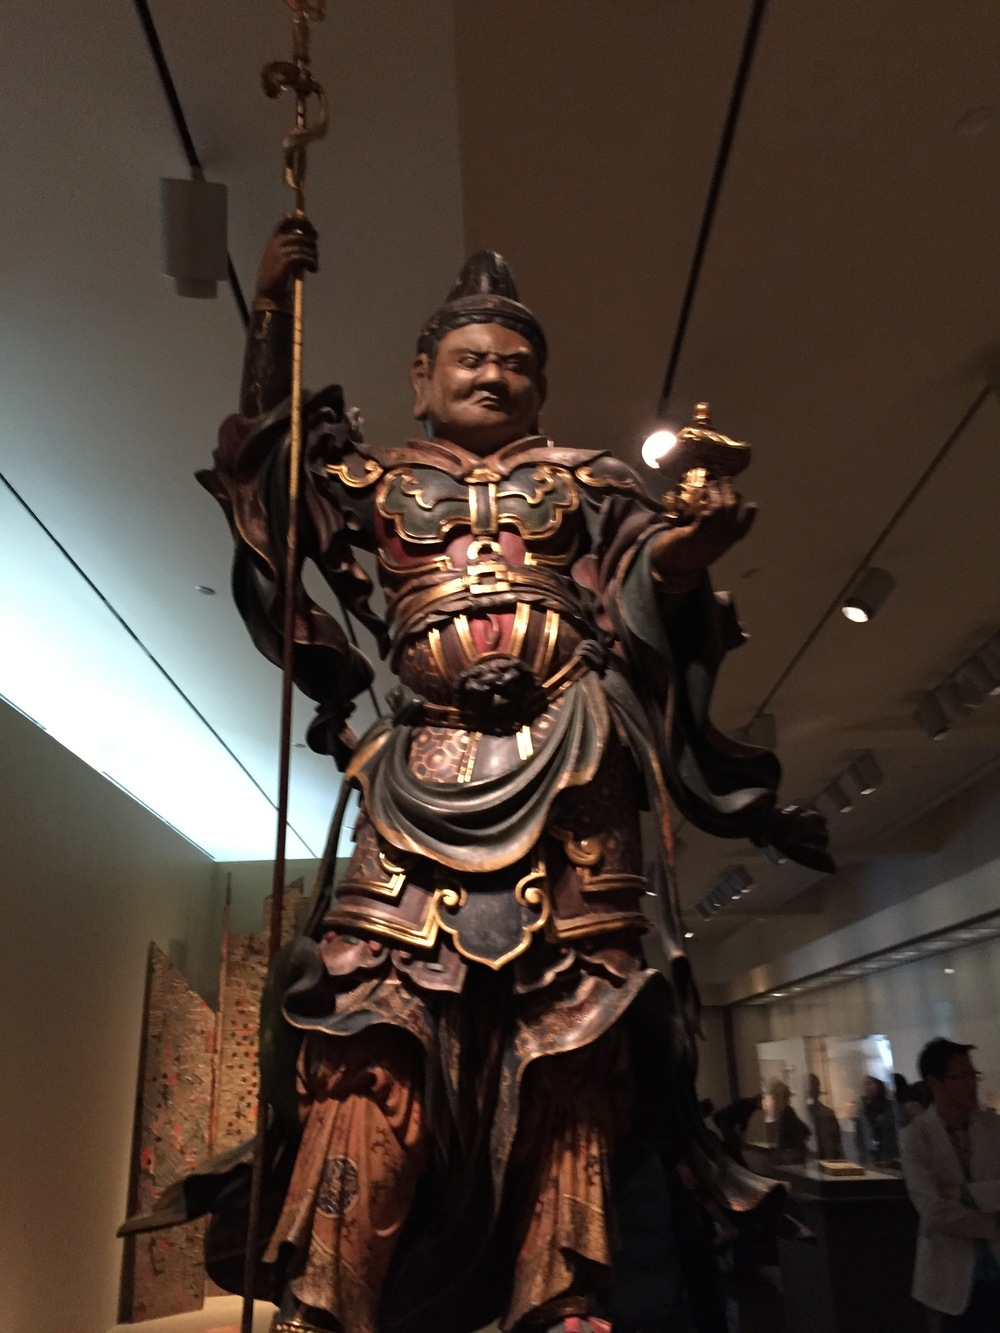 Vaishravna (Japanese: Bishamonten), Guardian King of the North